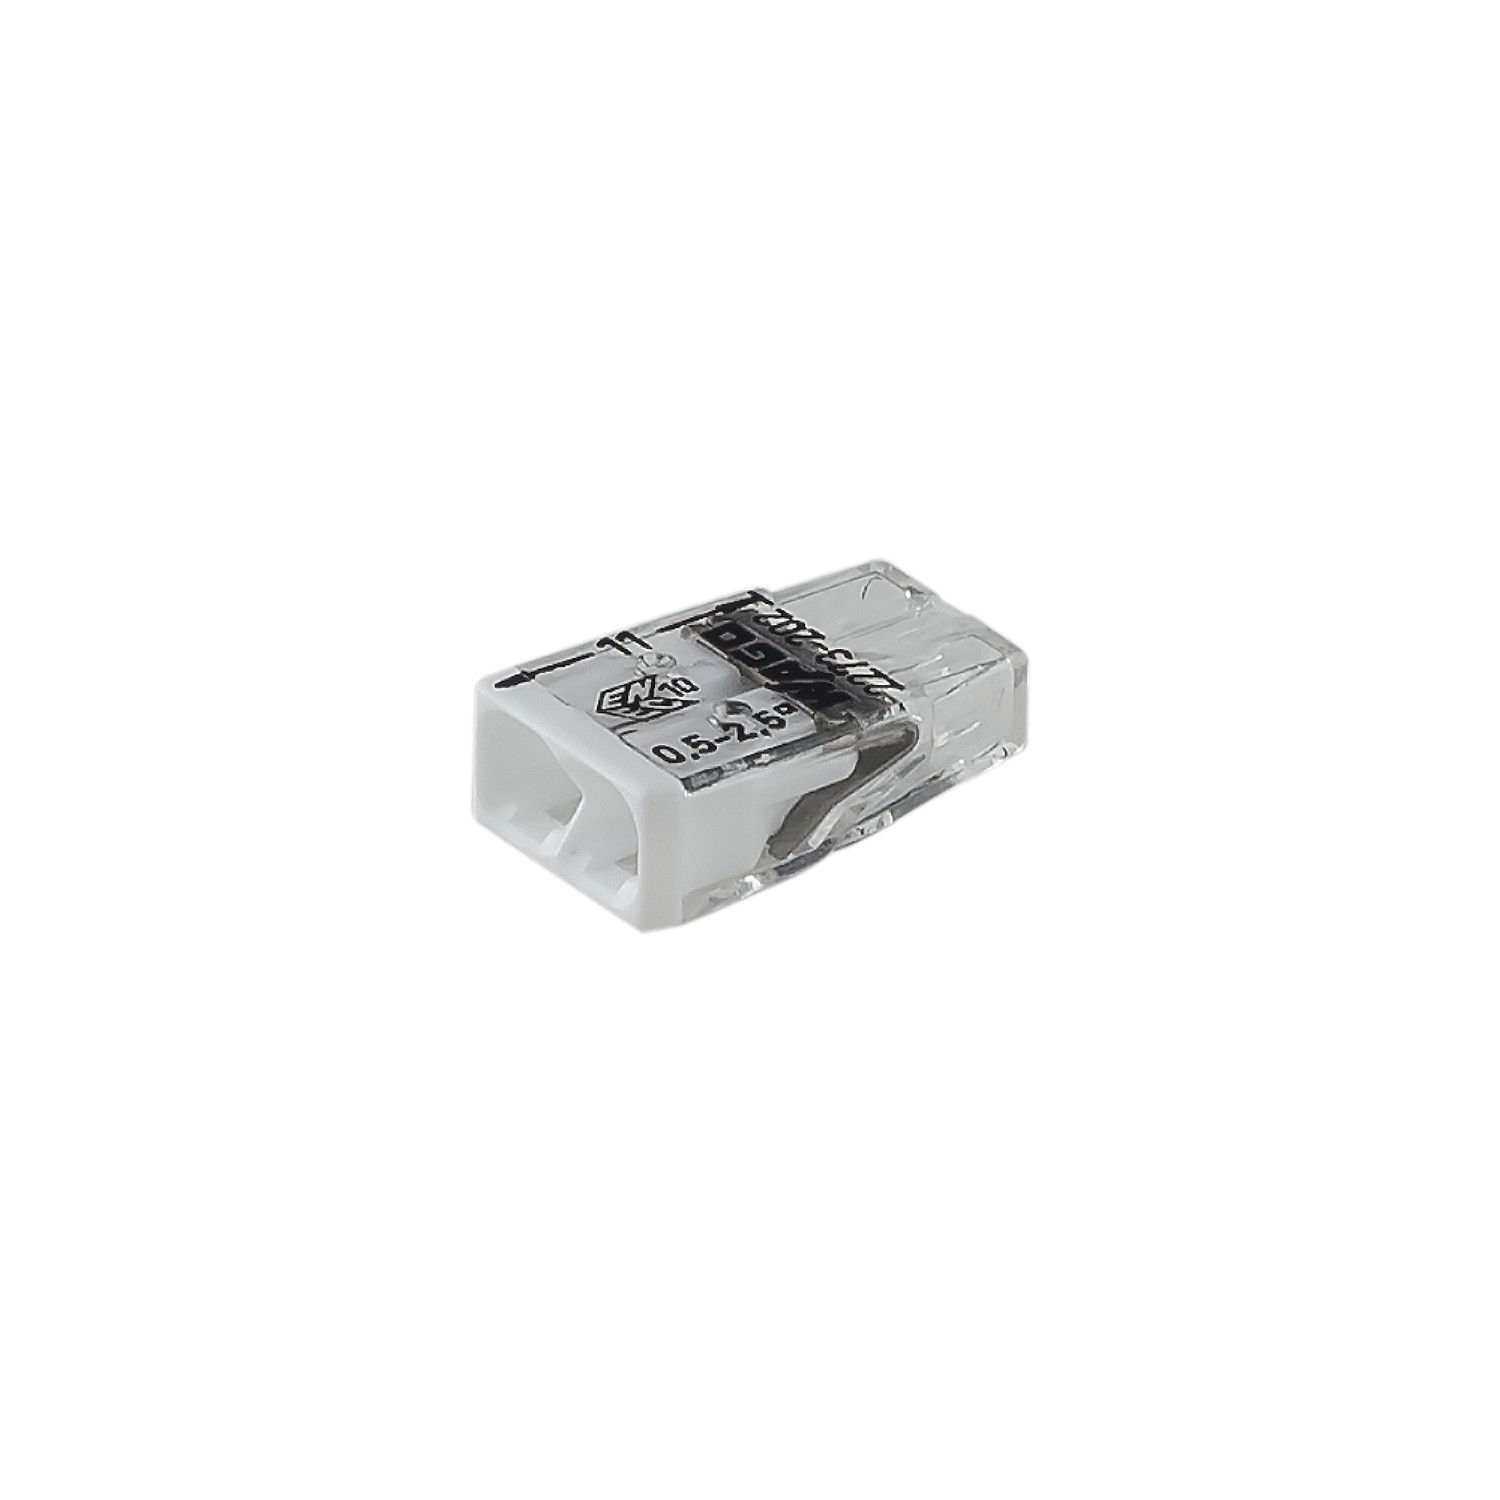 Wago 221 Series Compact Lever Connectors Connector 2 Wire 222 412 Terminal Block Cage Clamp 2273 202 Way Push